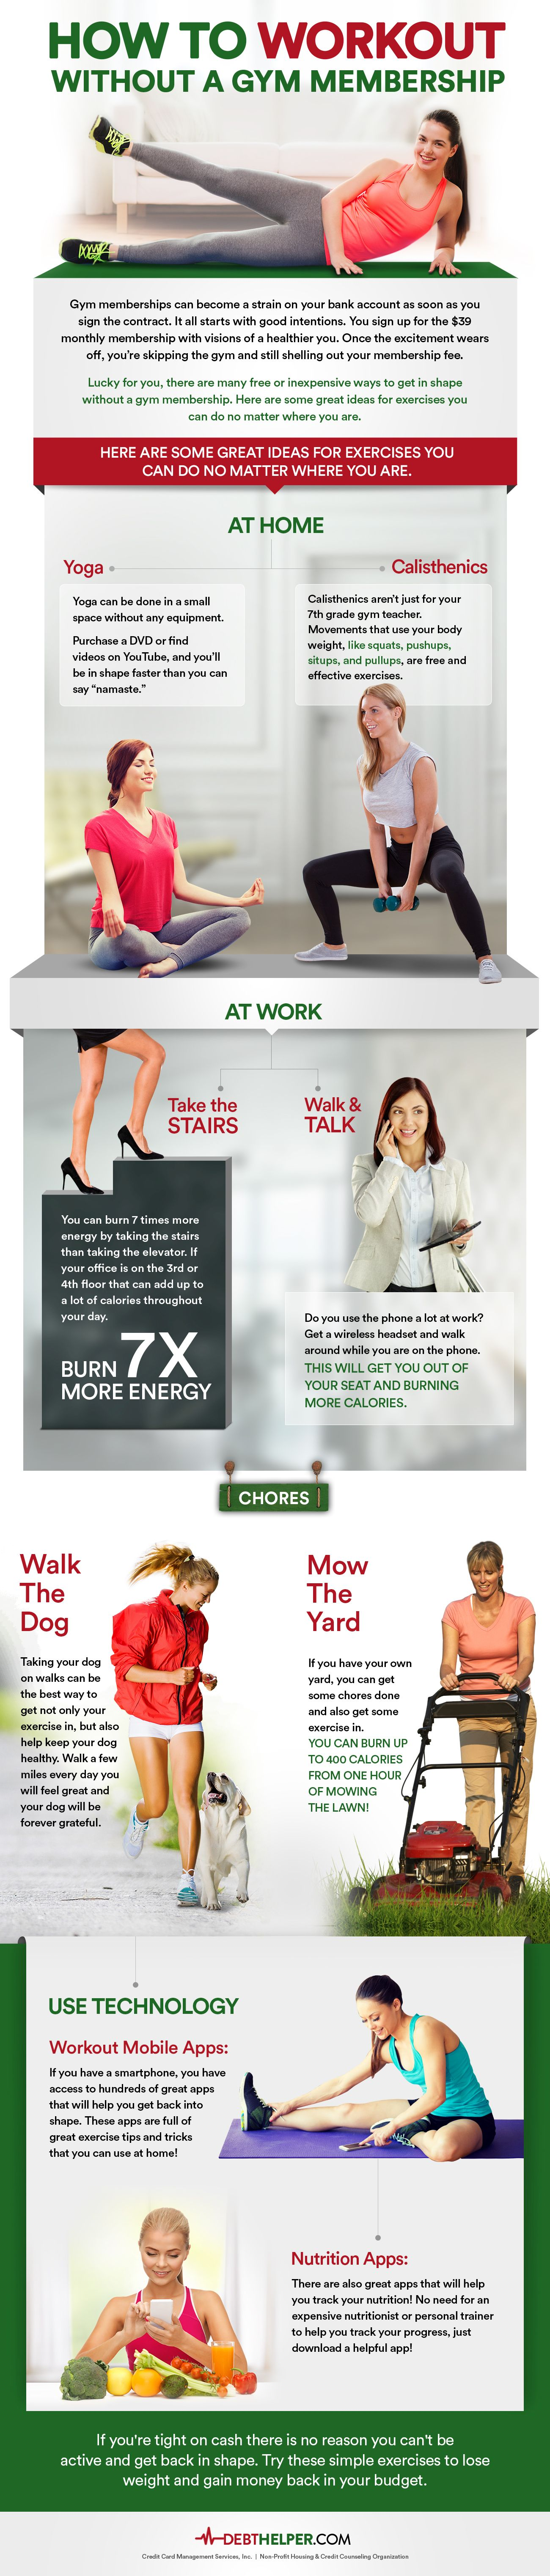 DH-Infographic-Exercise-Without-Gym